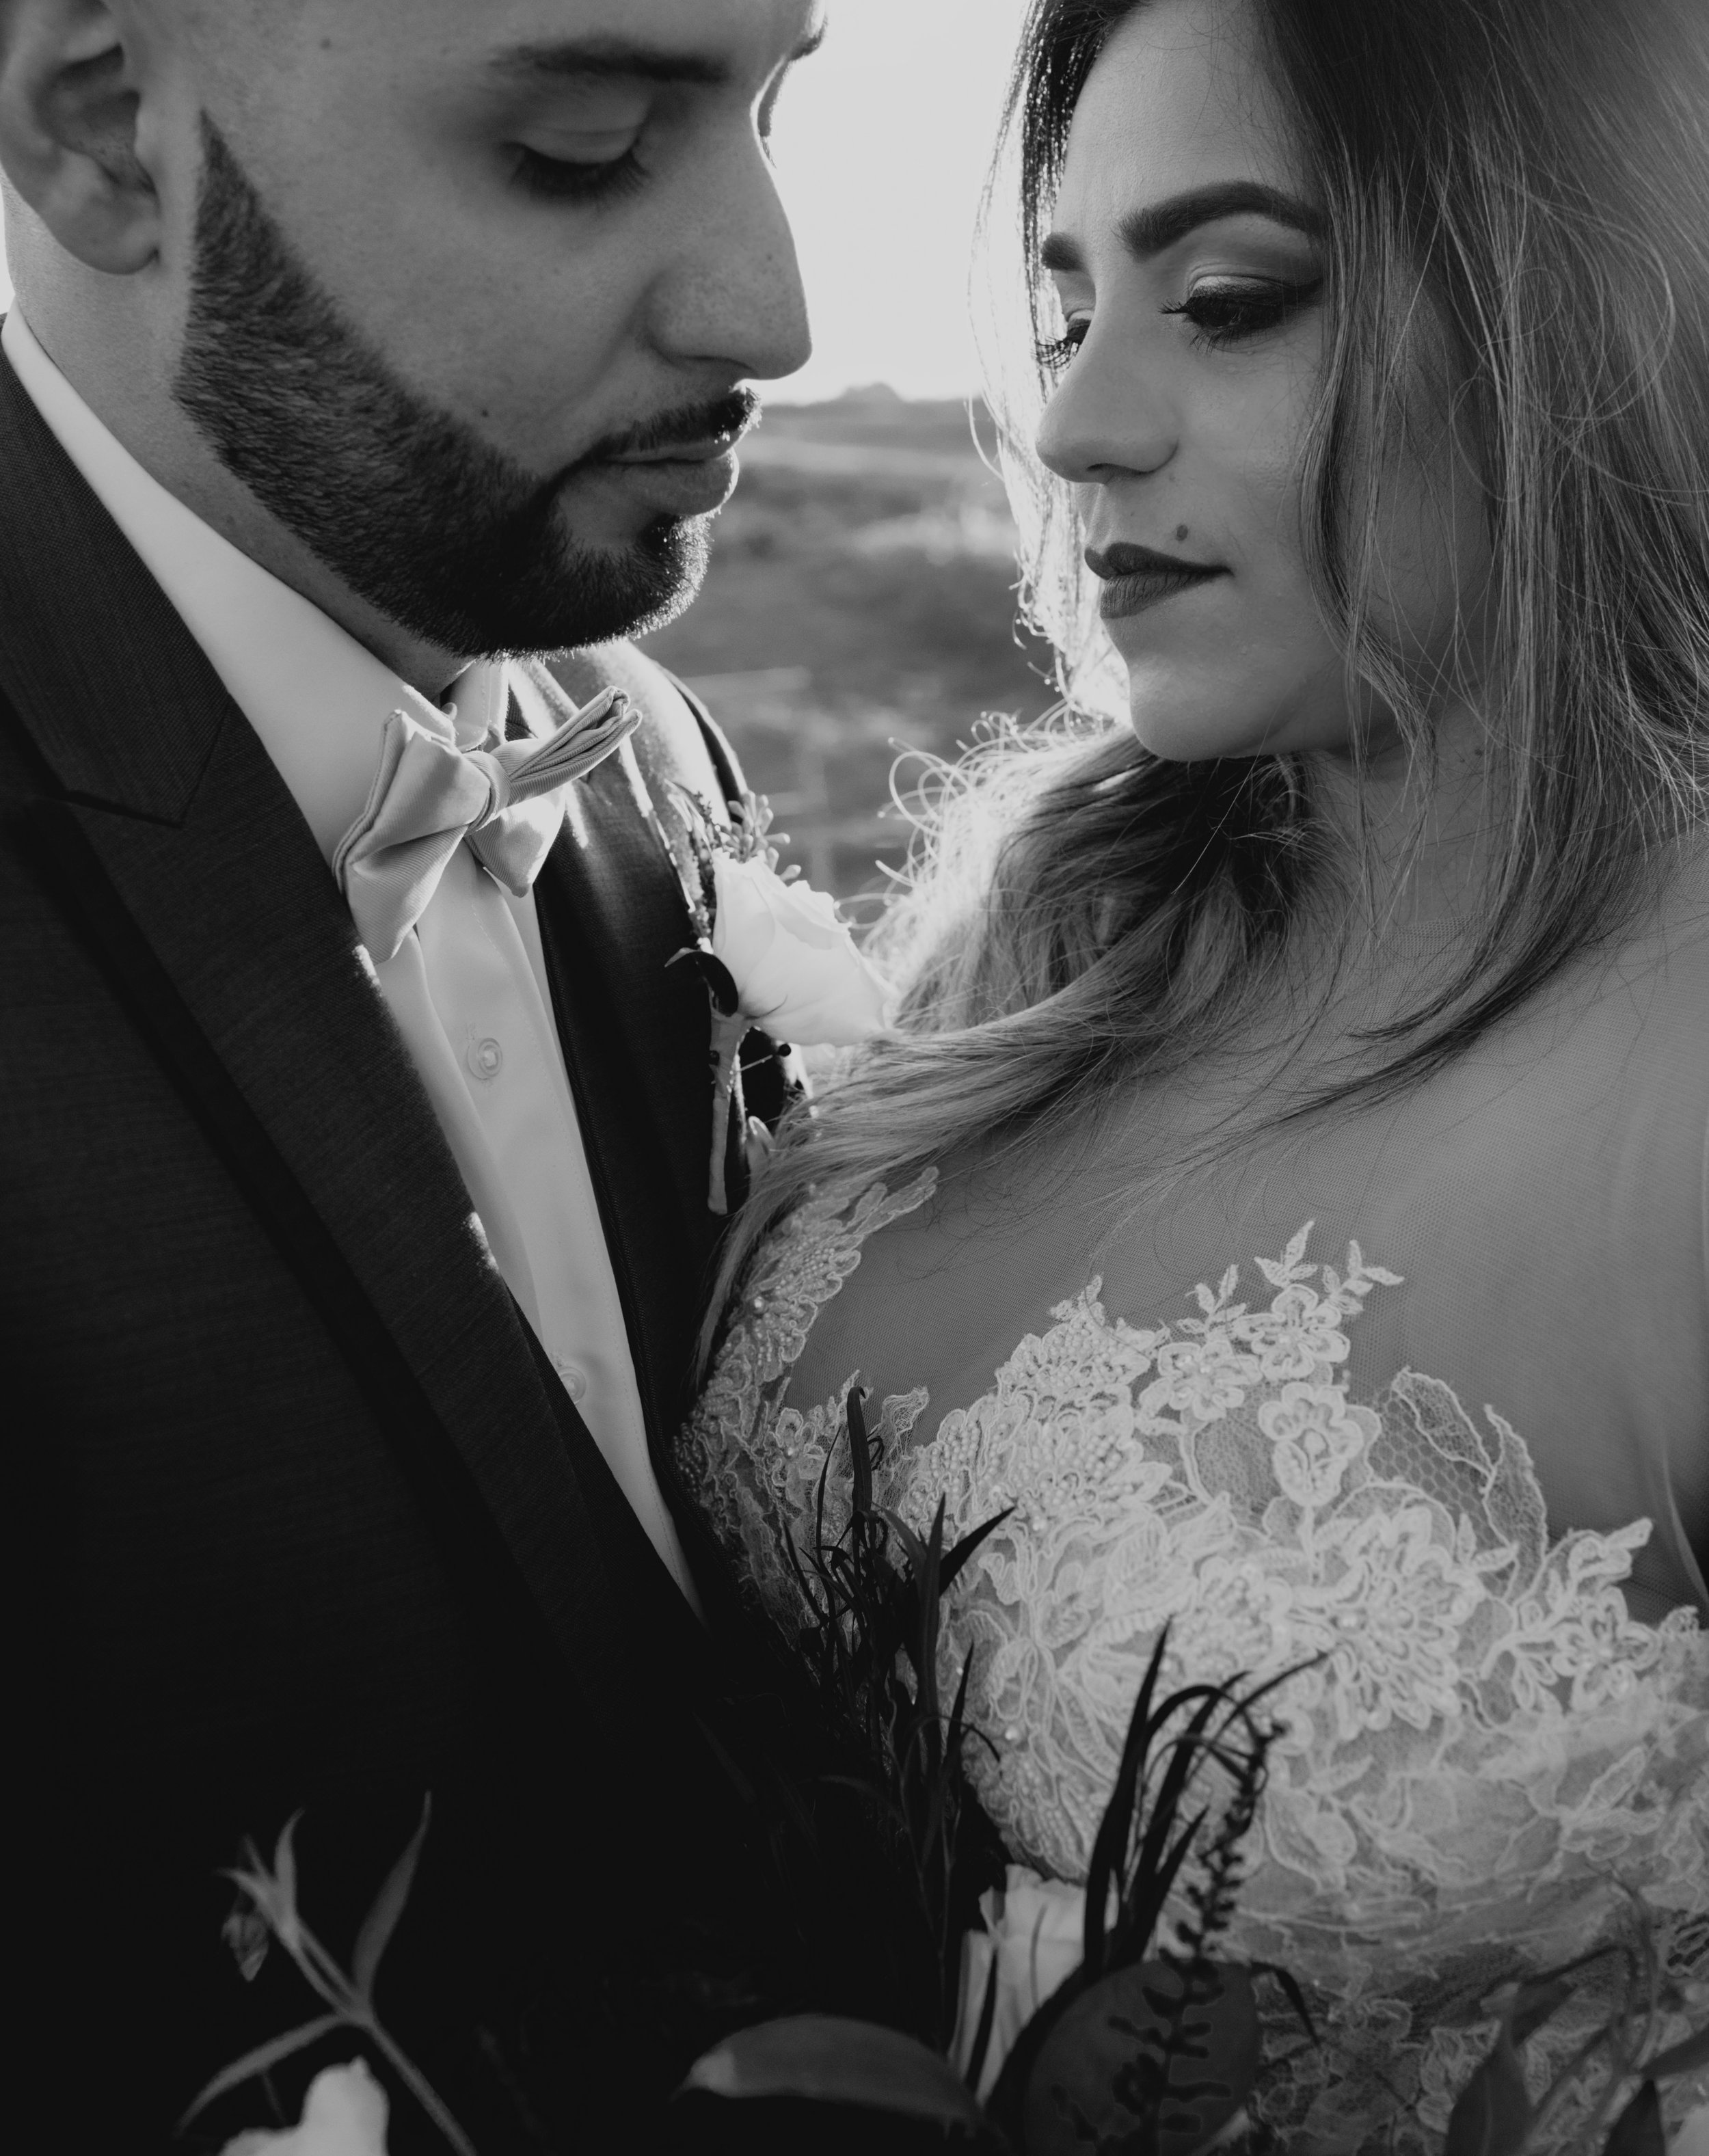 Wedding | Raquel and Will | Island Grove Wine at Formosa Gardens | captured by Vanessa Boy |Vanessaboy.com 12.jpg